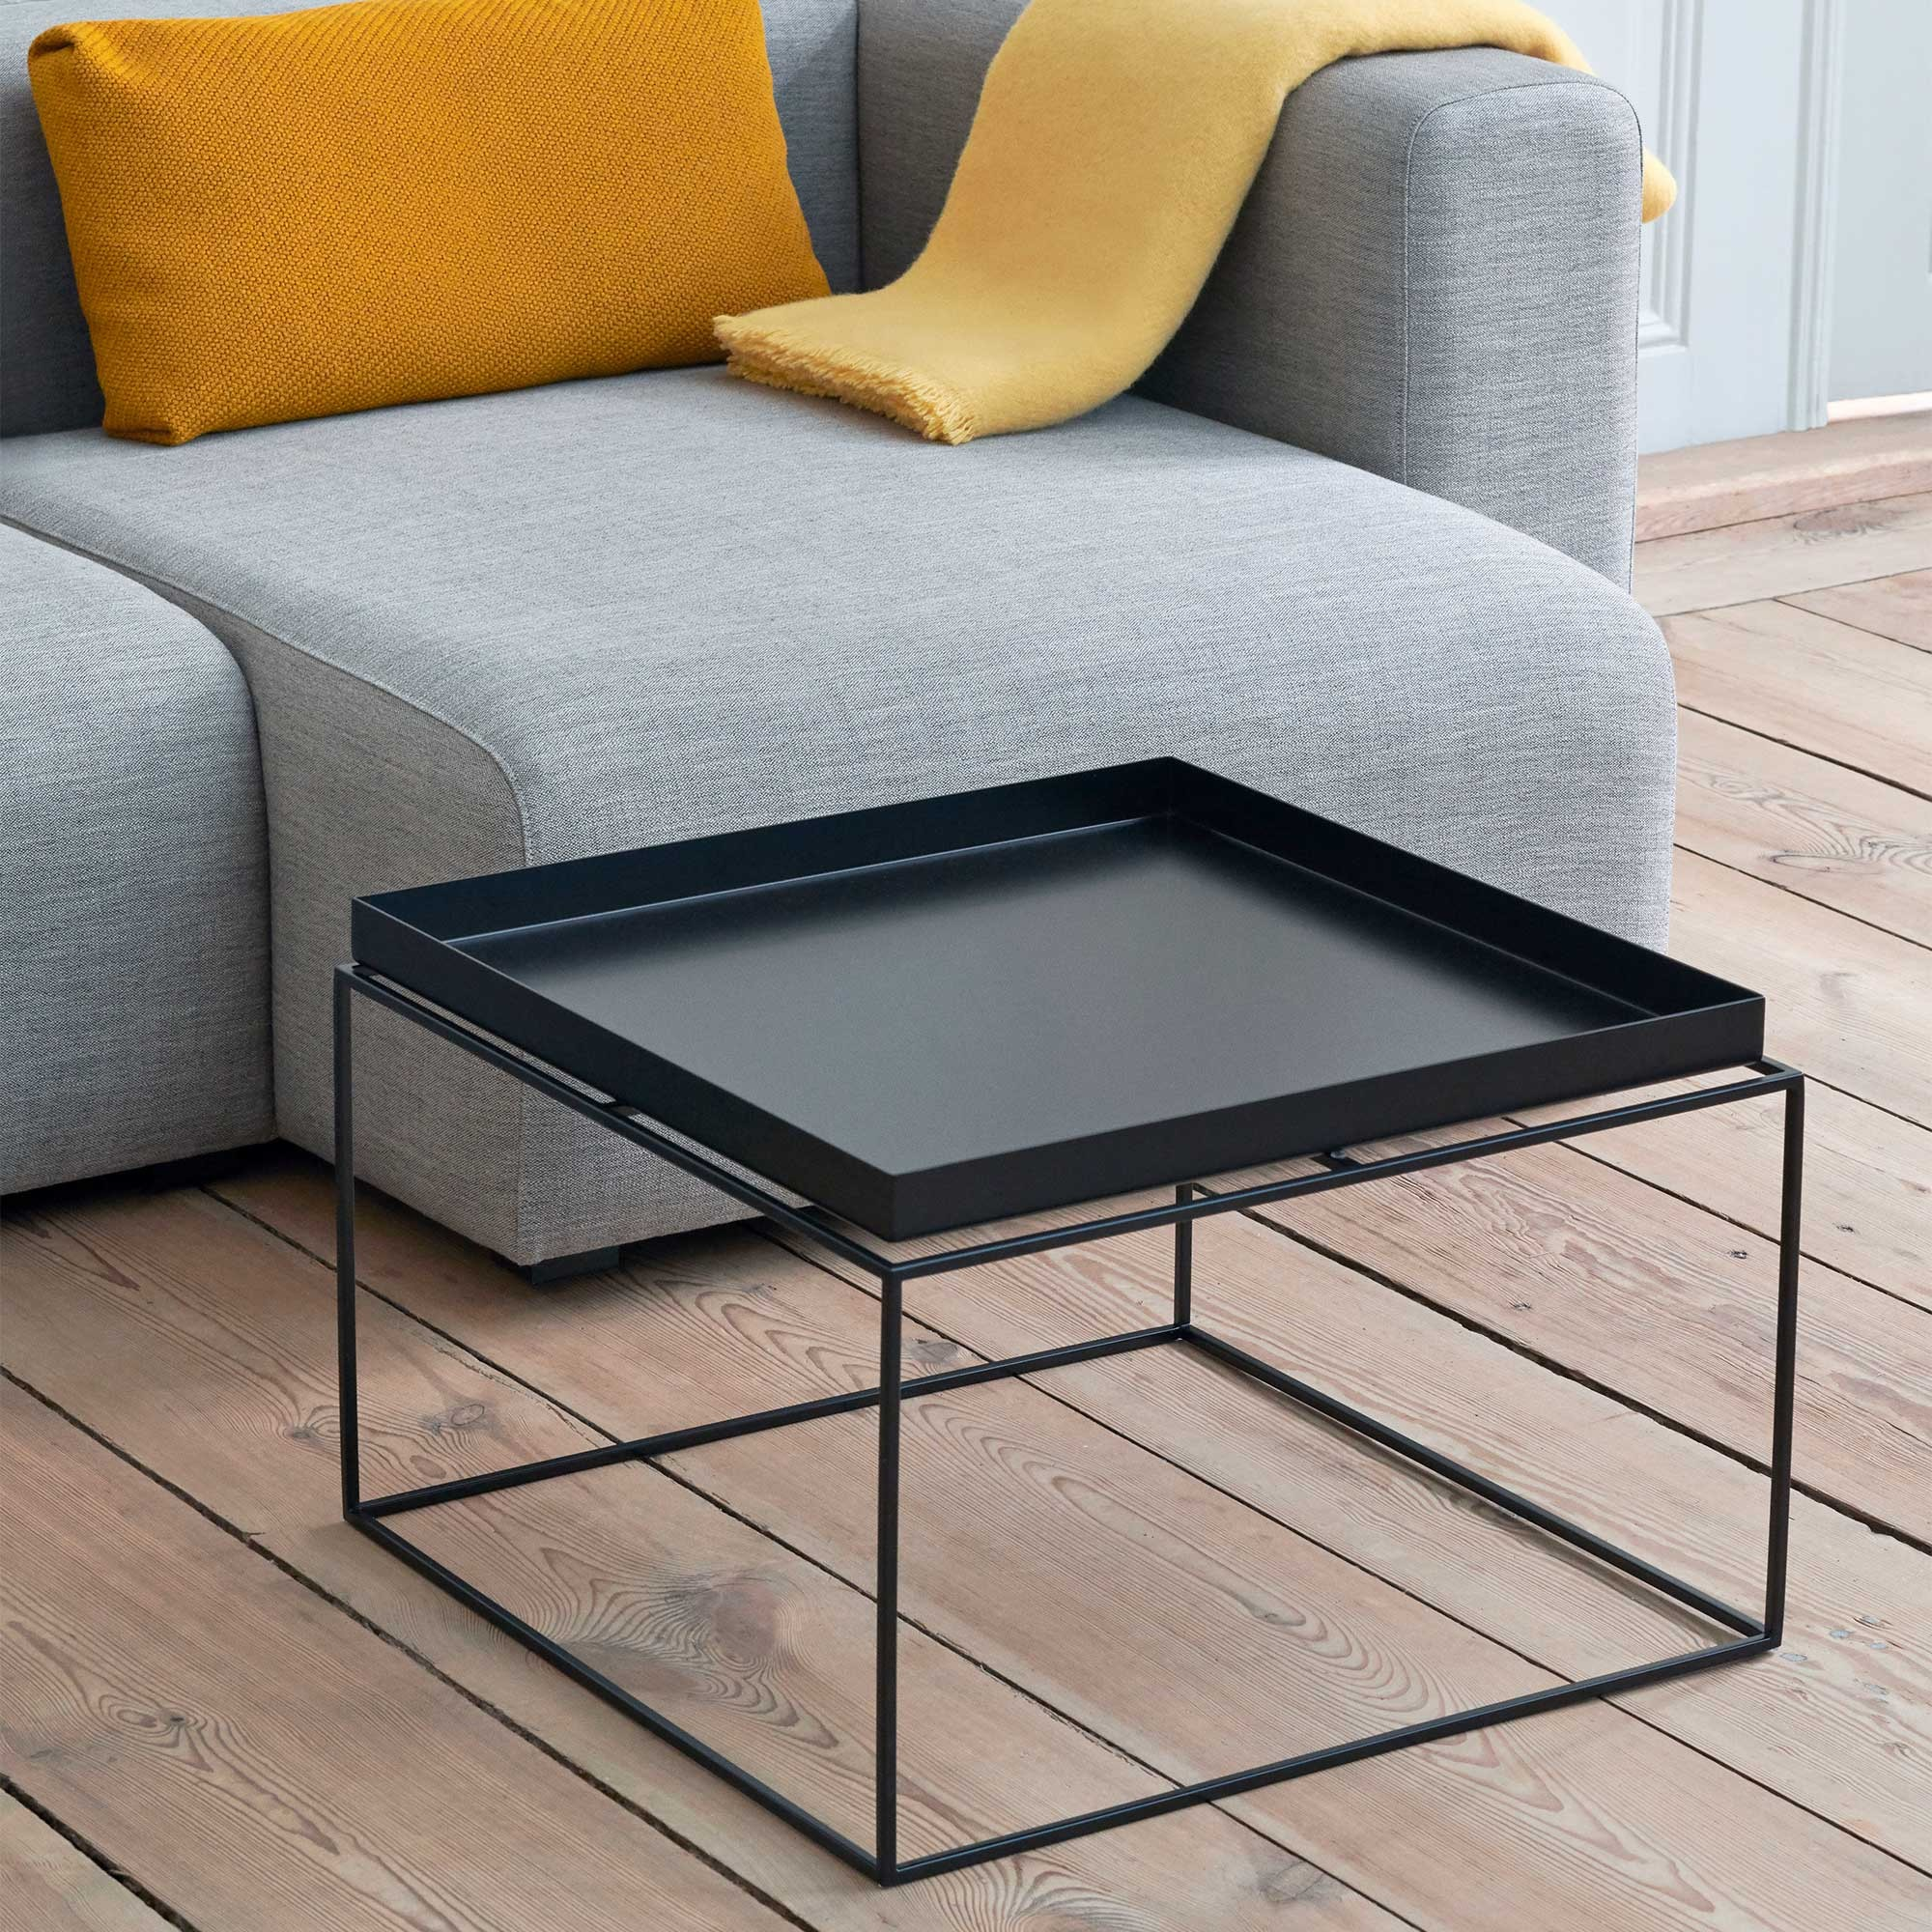 - HAY Tray Coffee Table AmbienteDirect